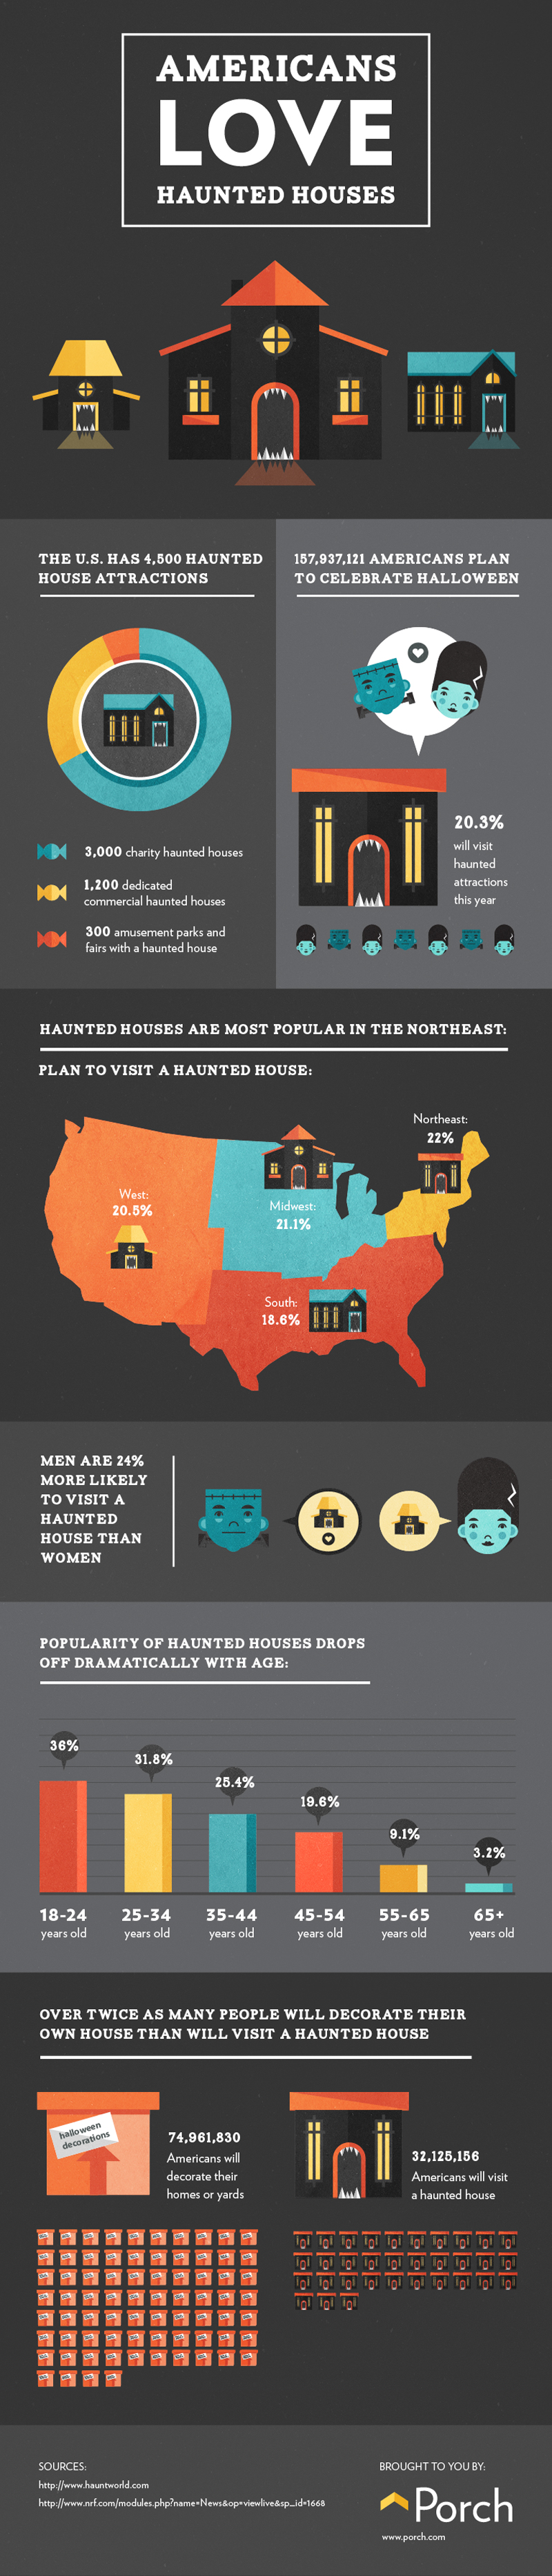 Haunted Houses Infographic Porch